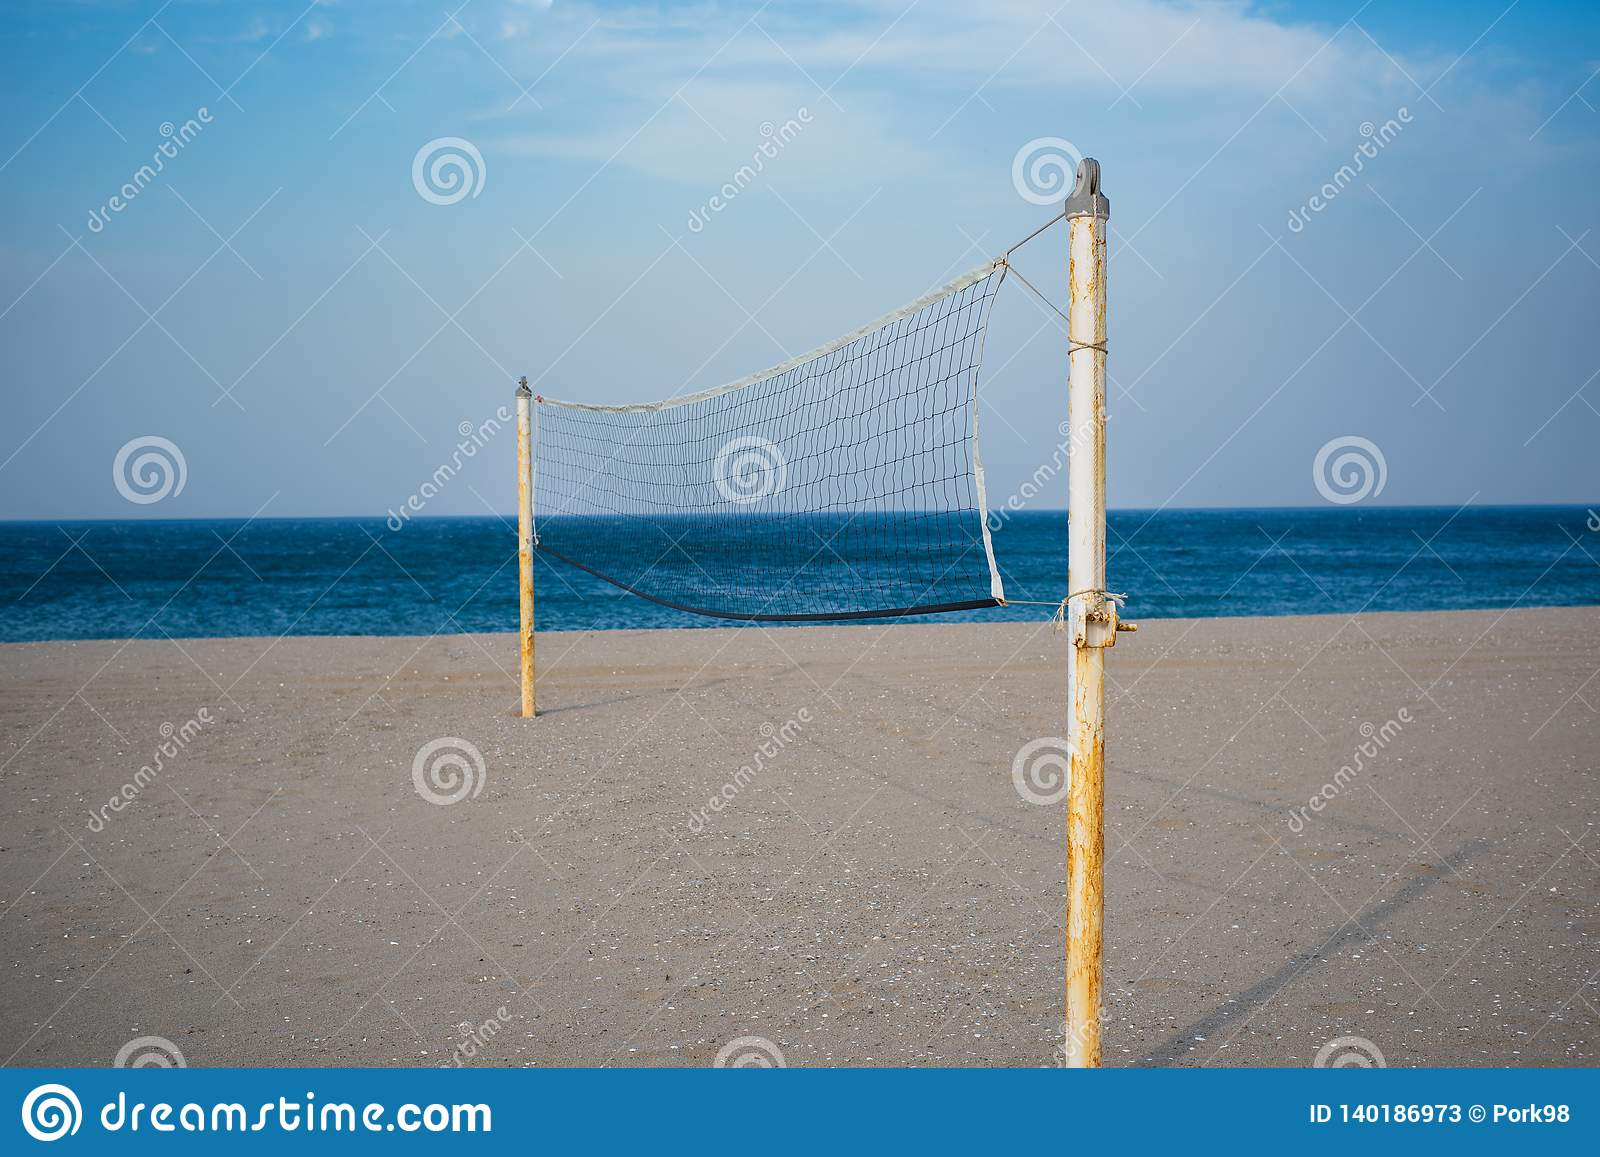 Beach volleyball net on a sands beach